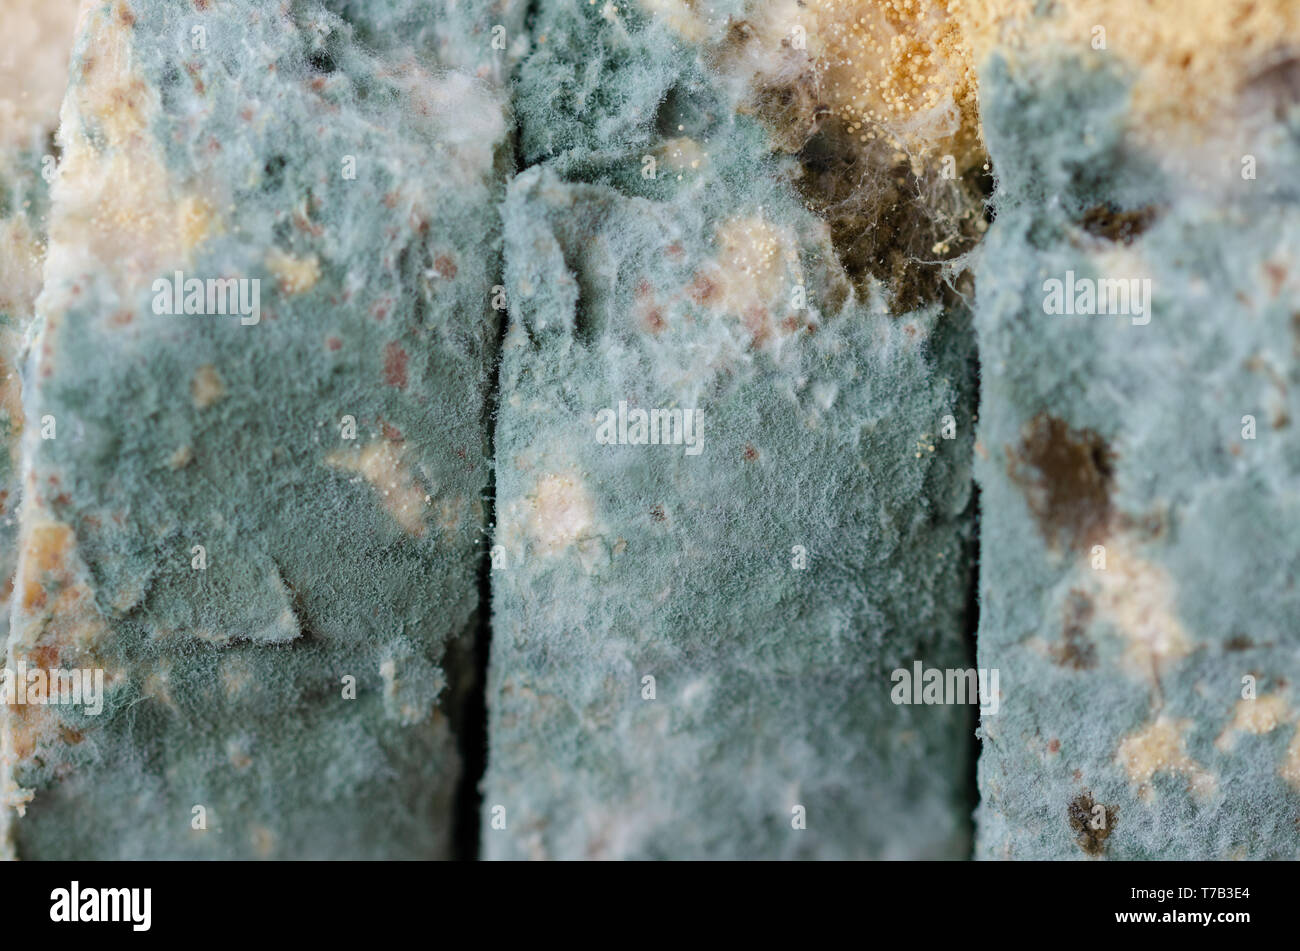 Moldy bread slices close up. .Moldy inedible food. - Stock Image